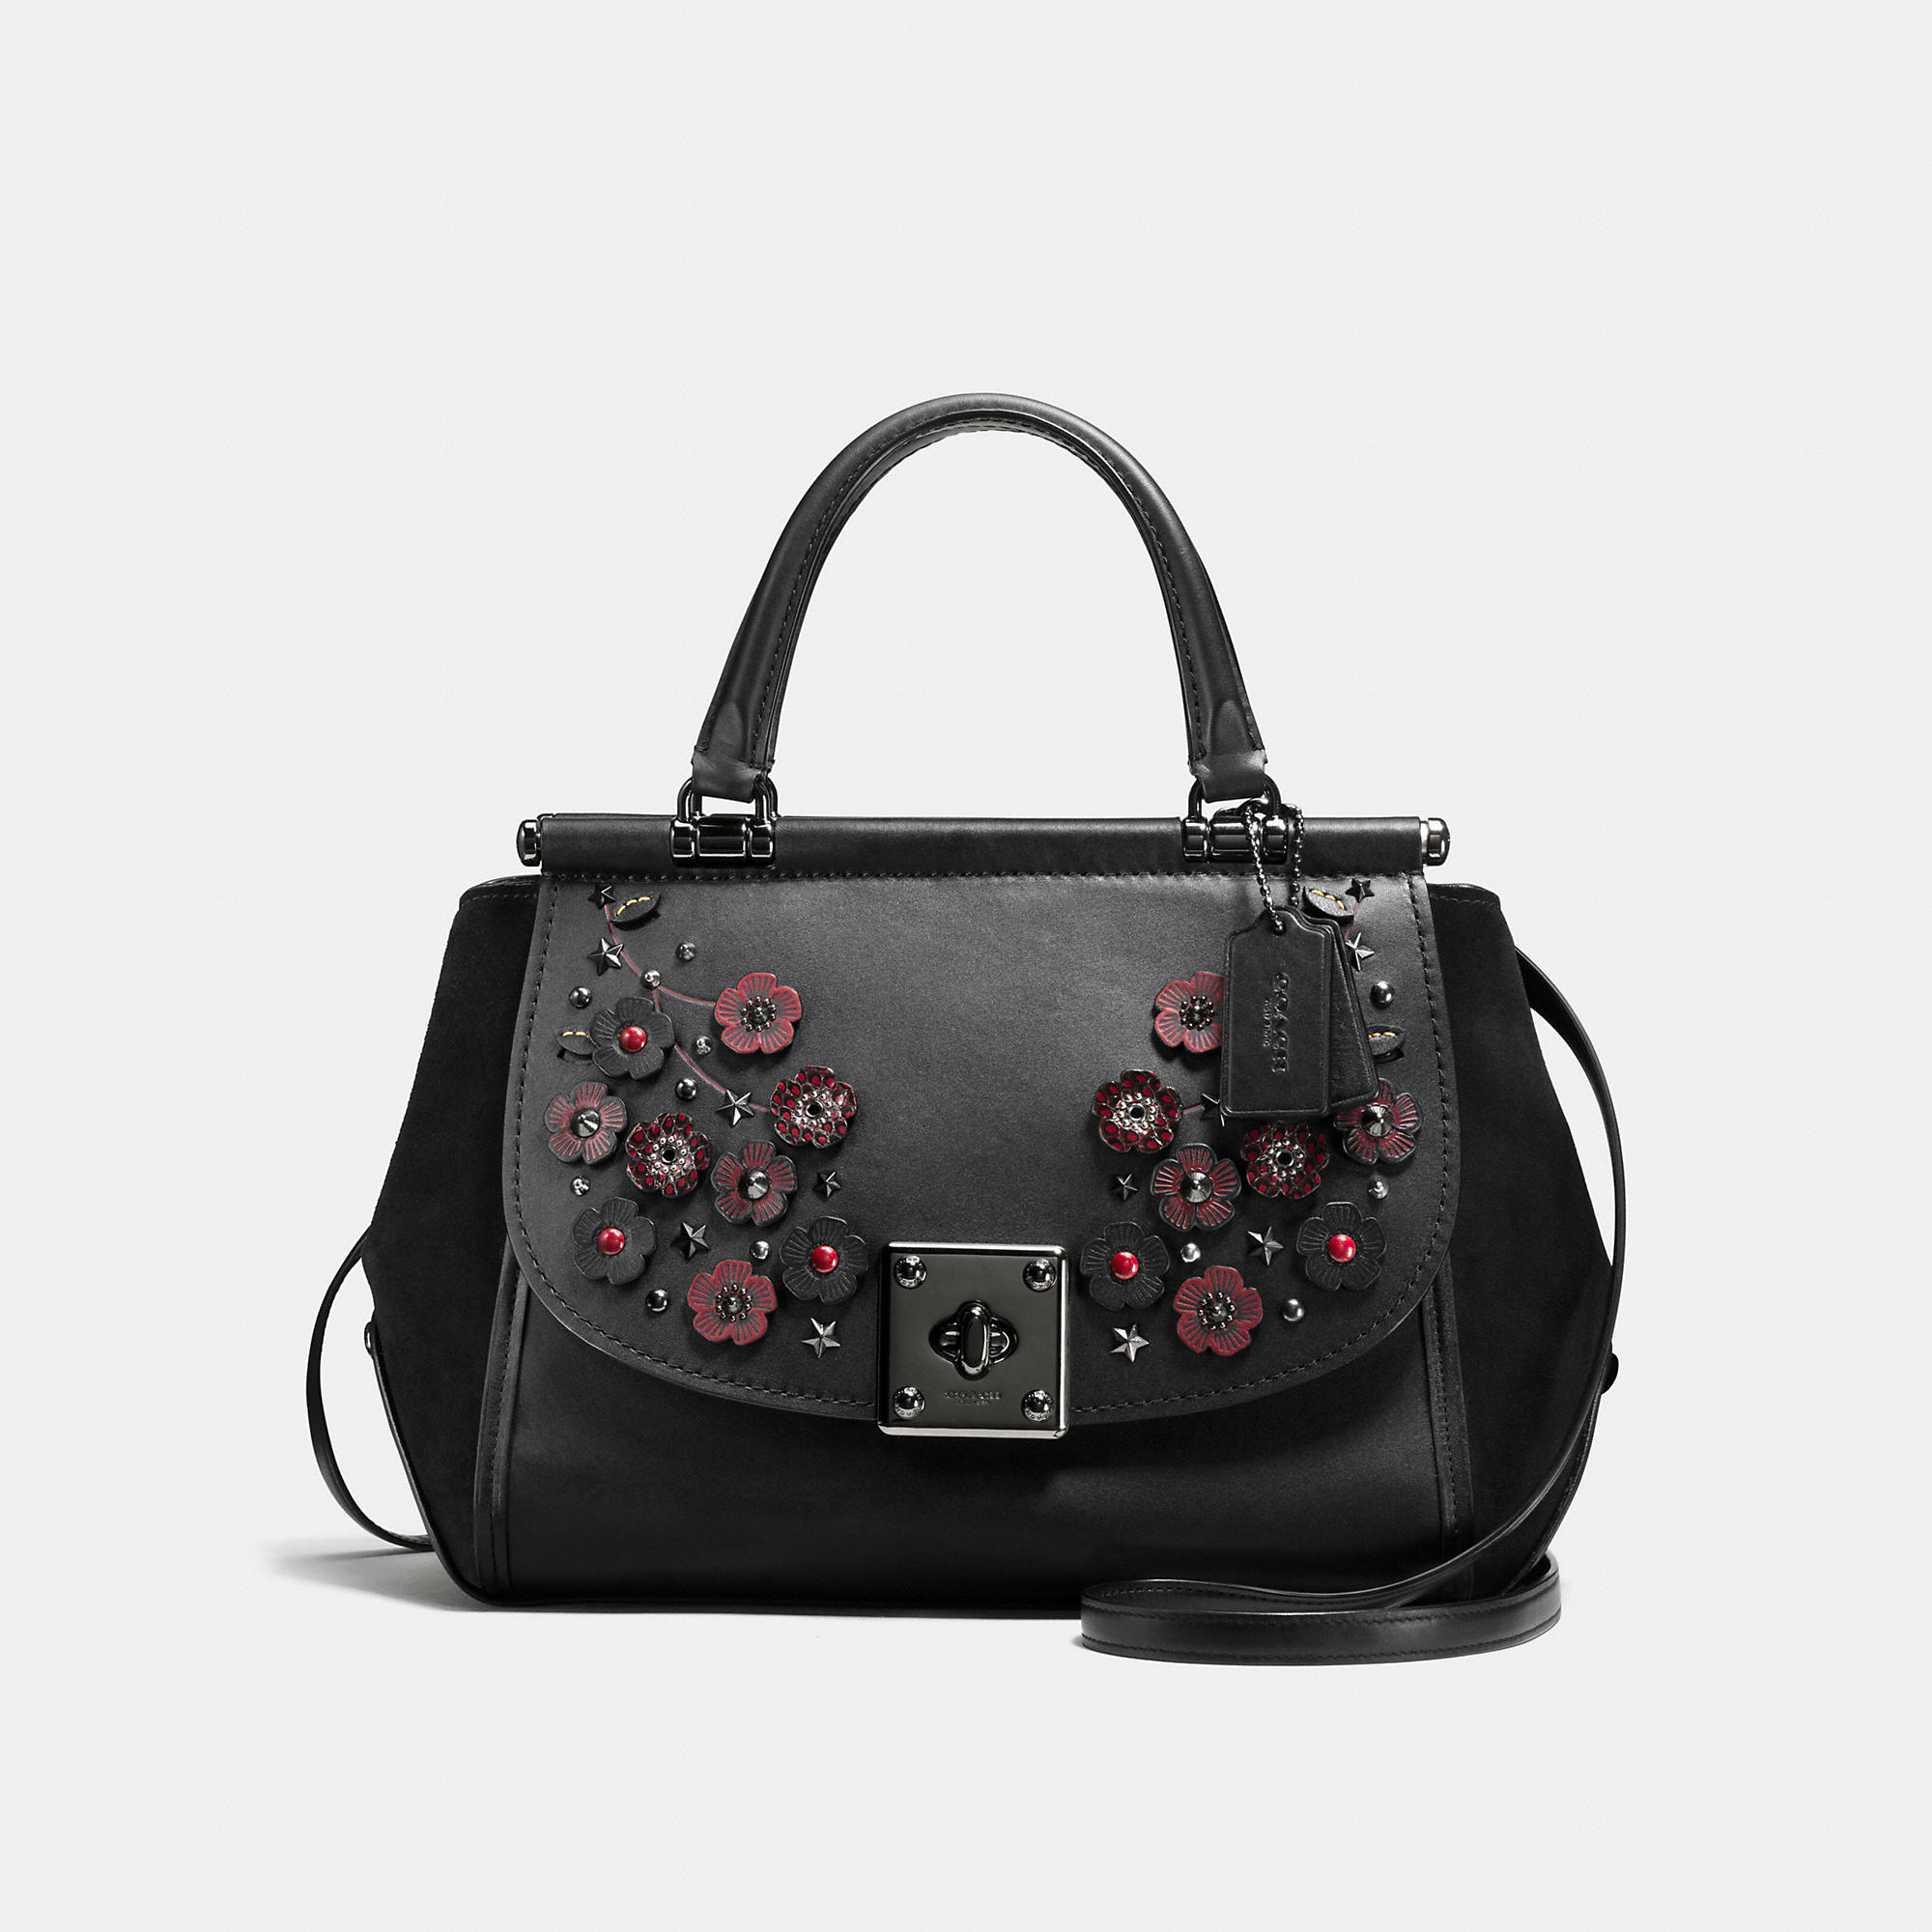 Coach Drifter Carryall In Glovetanned Leather With Willow Floral Detail